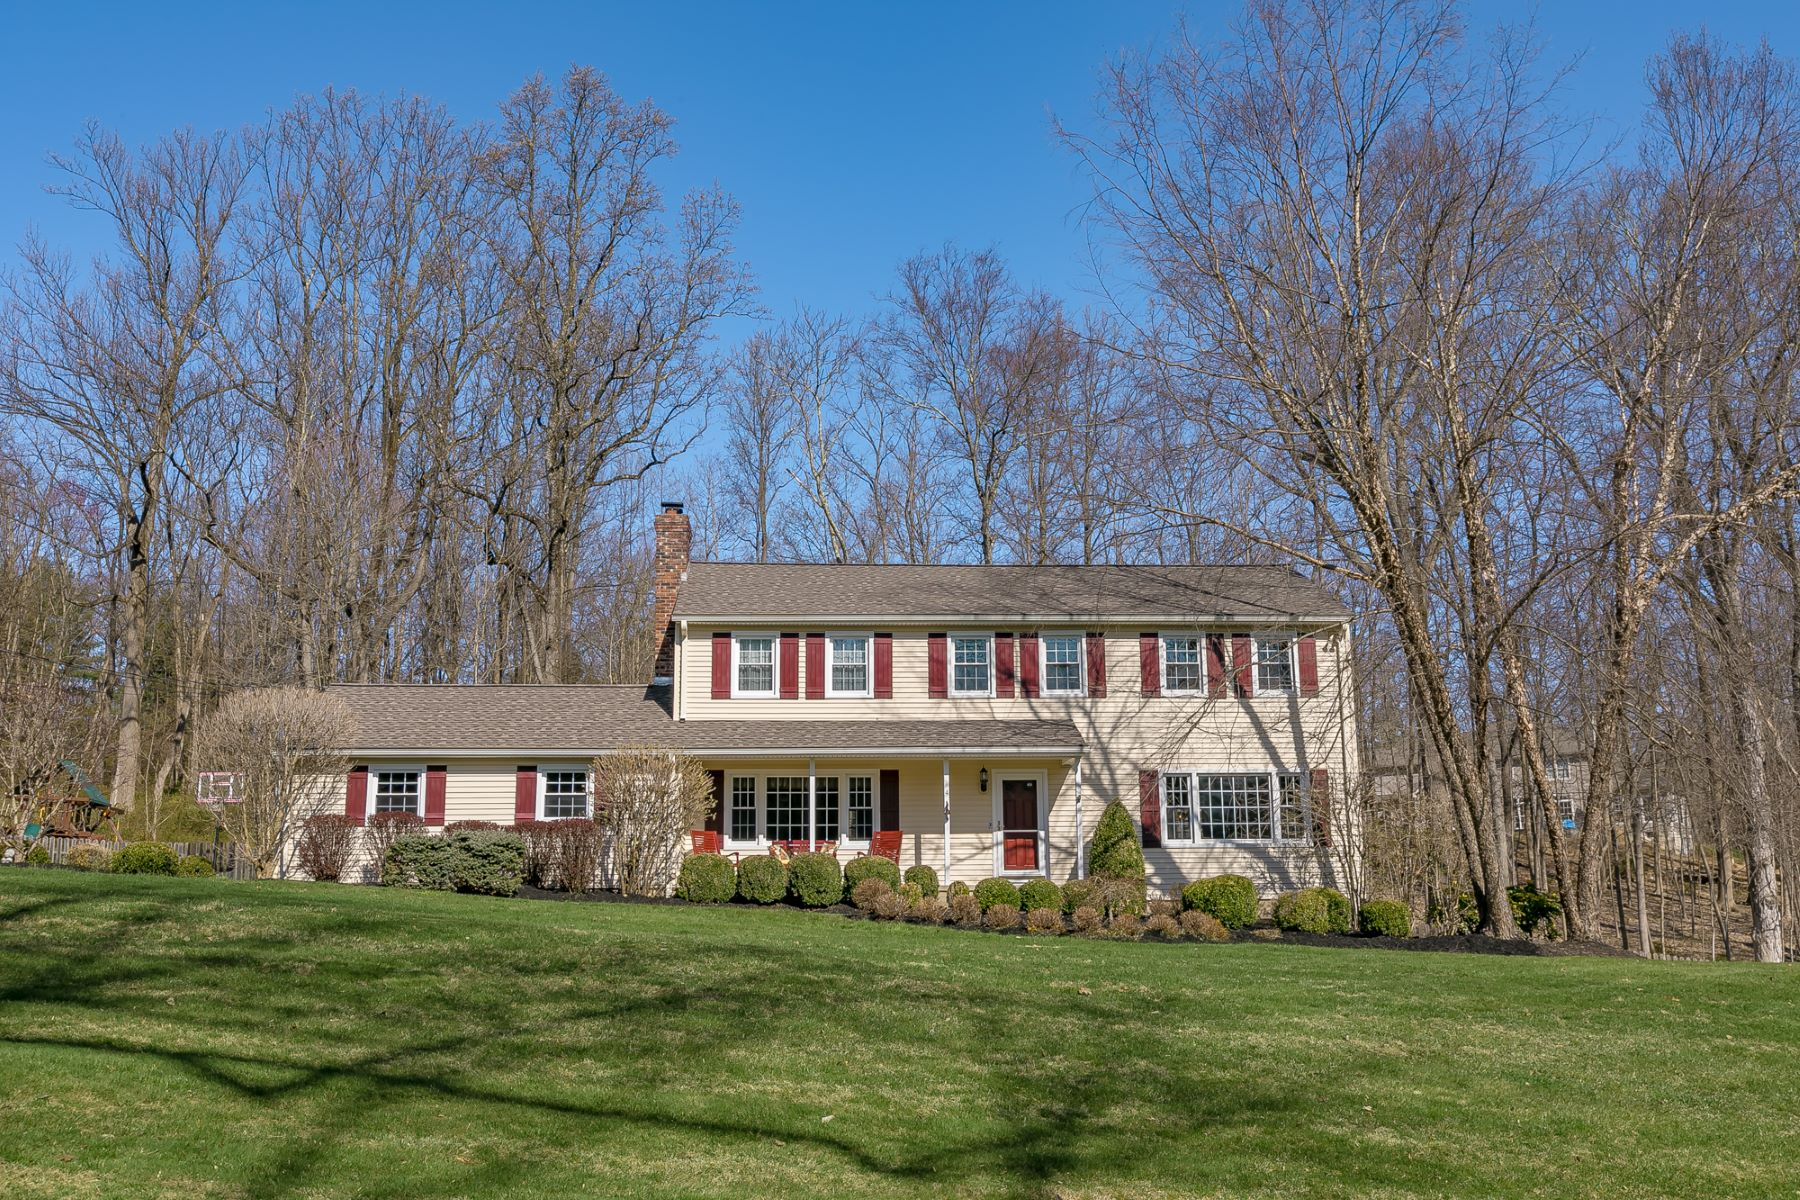 Single Family Homes for Sale at Charming Colonial Home 4 Benjamin Road Chester, New Jersey 07930 United States